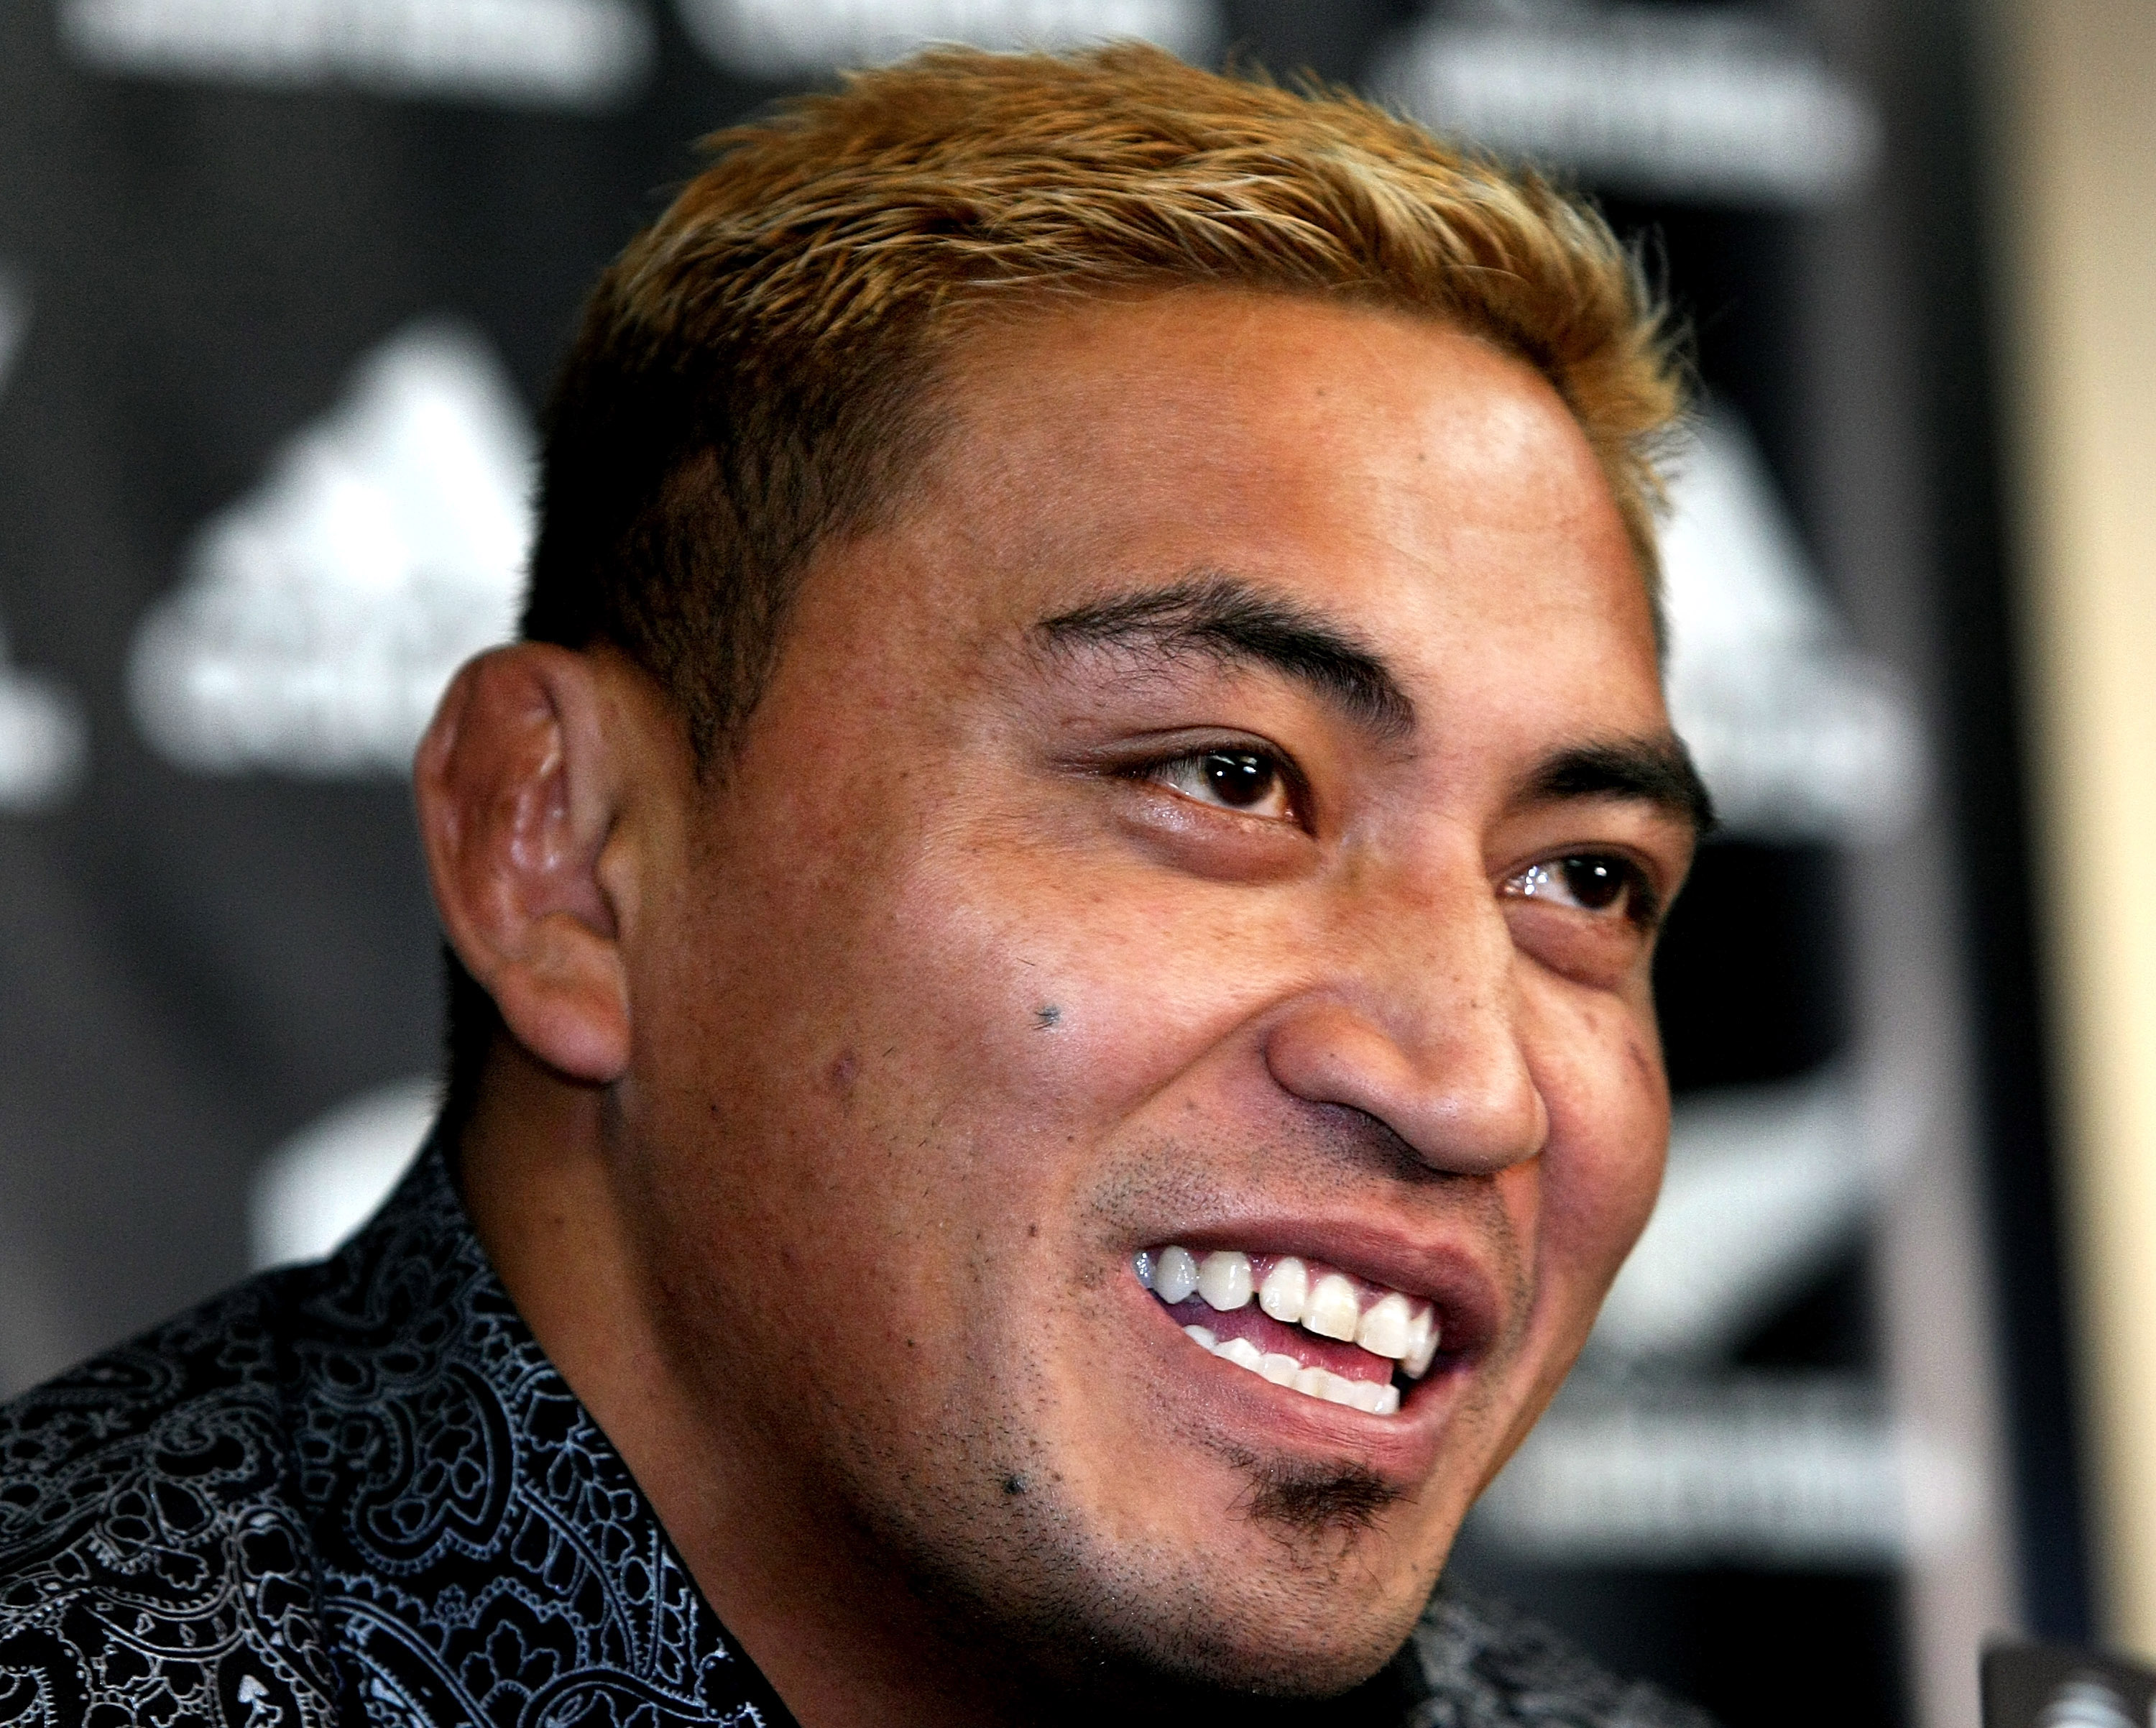 Jerry Collins of the Hurricanes and the New Zealand All Blacks addresses the media during a press conference at the New Zealand Rugby Union headquarters on May 26, 2008 in Wellington, New Zealand.